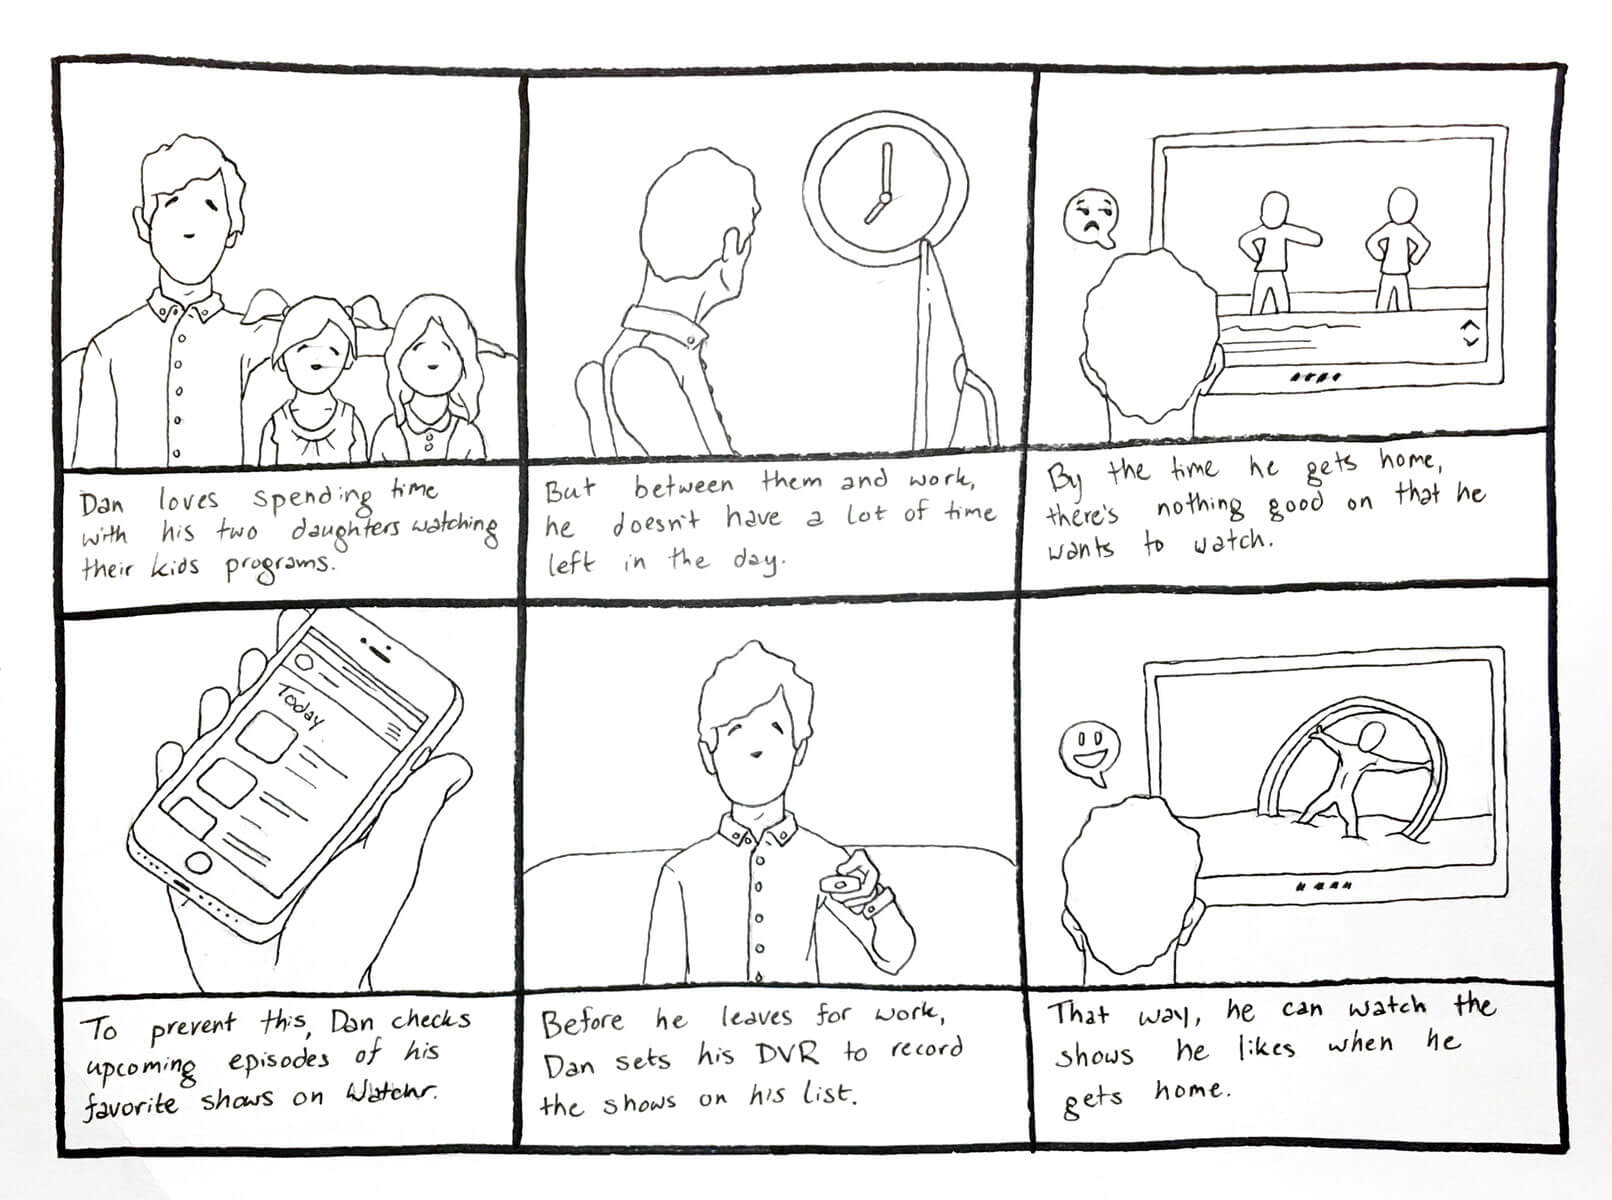 A hand-drawn storyboard with six panels. Each panel features an image with a caption below it.